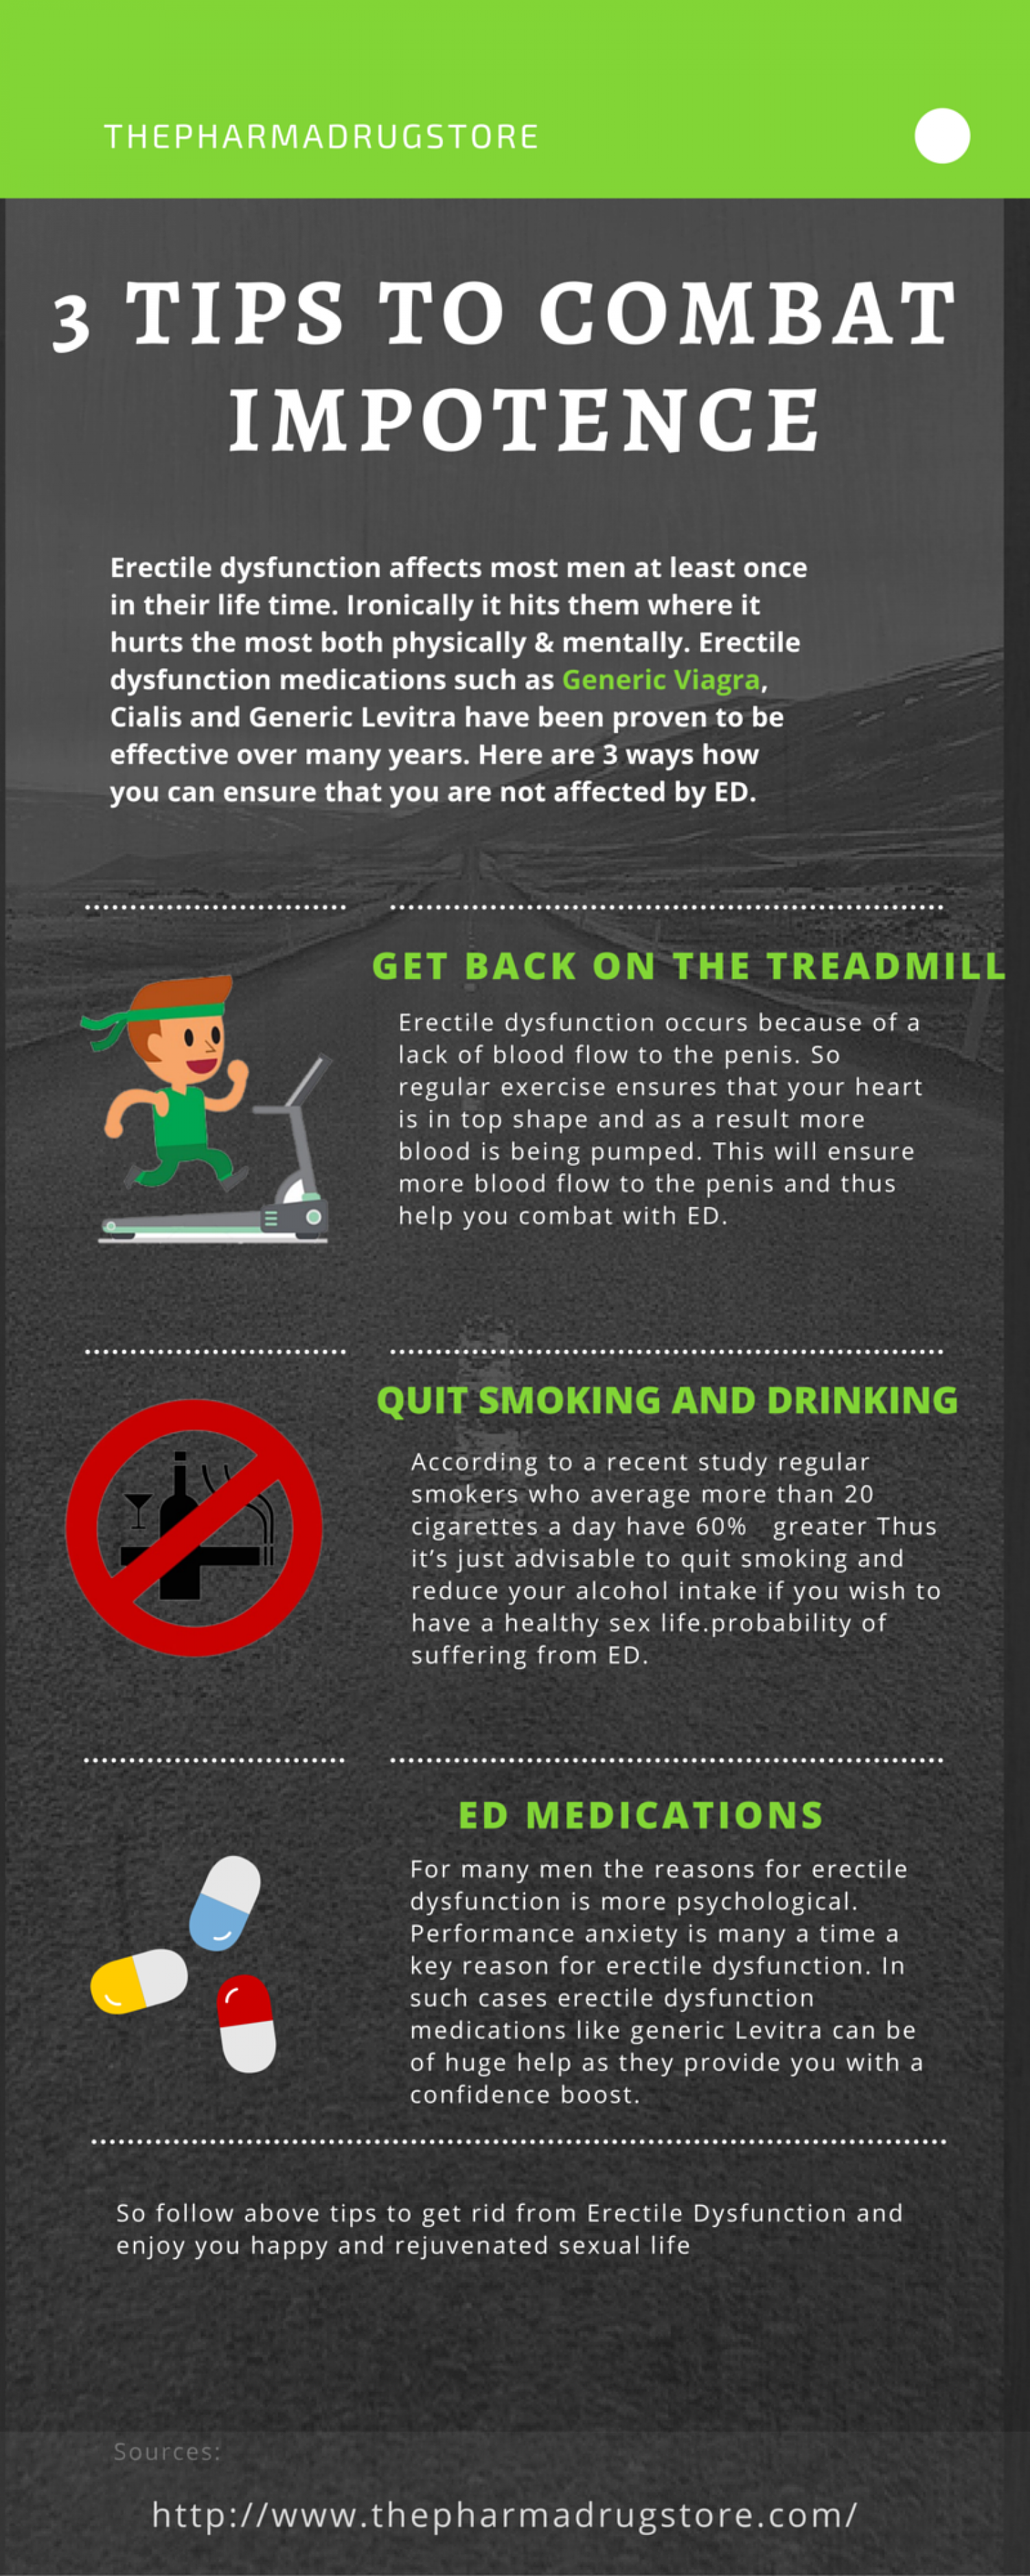 3 Tips to combat impotence Infographic